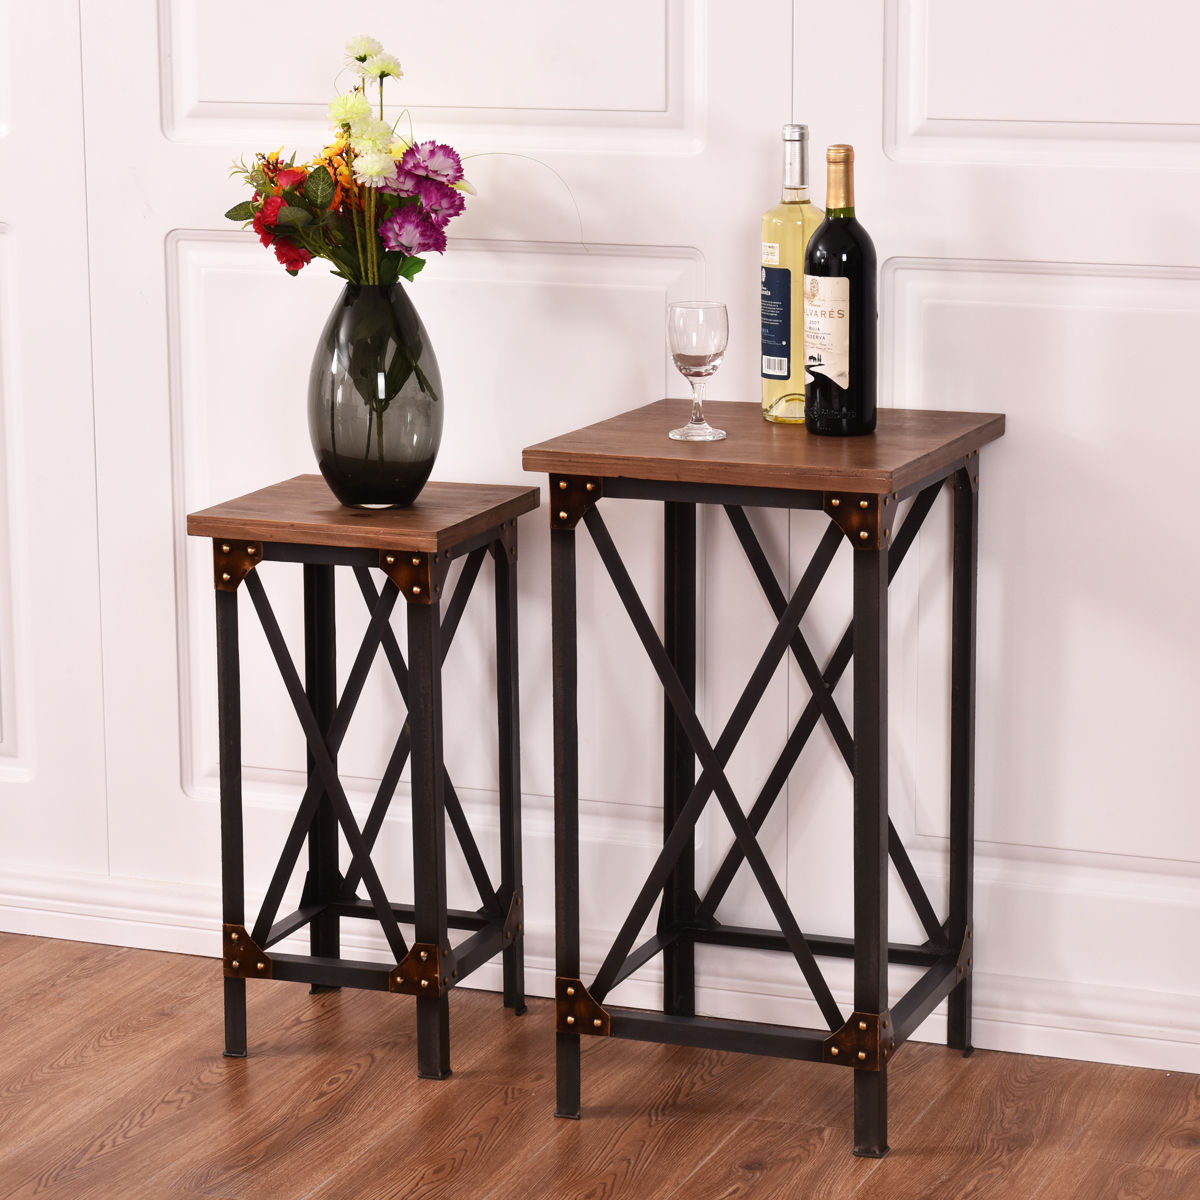 Iron Side Tables For Living Room Ghp Set Of 2 Iron And Chinese Fir Durable Retro Style Living